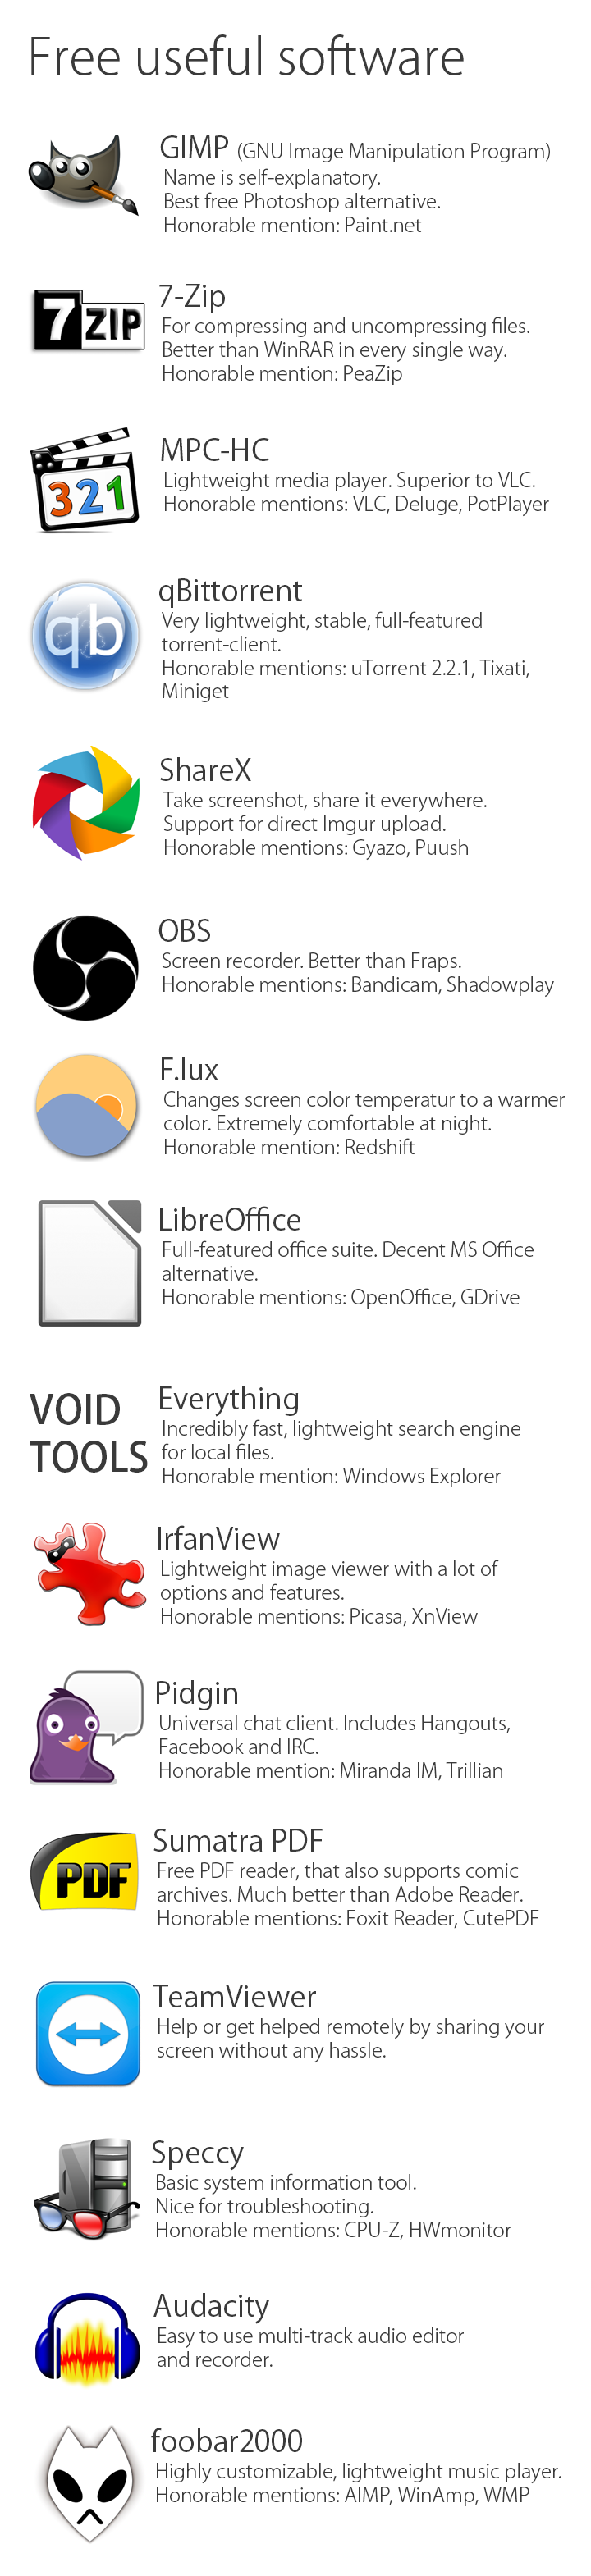 A much better list of free, useful software.